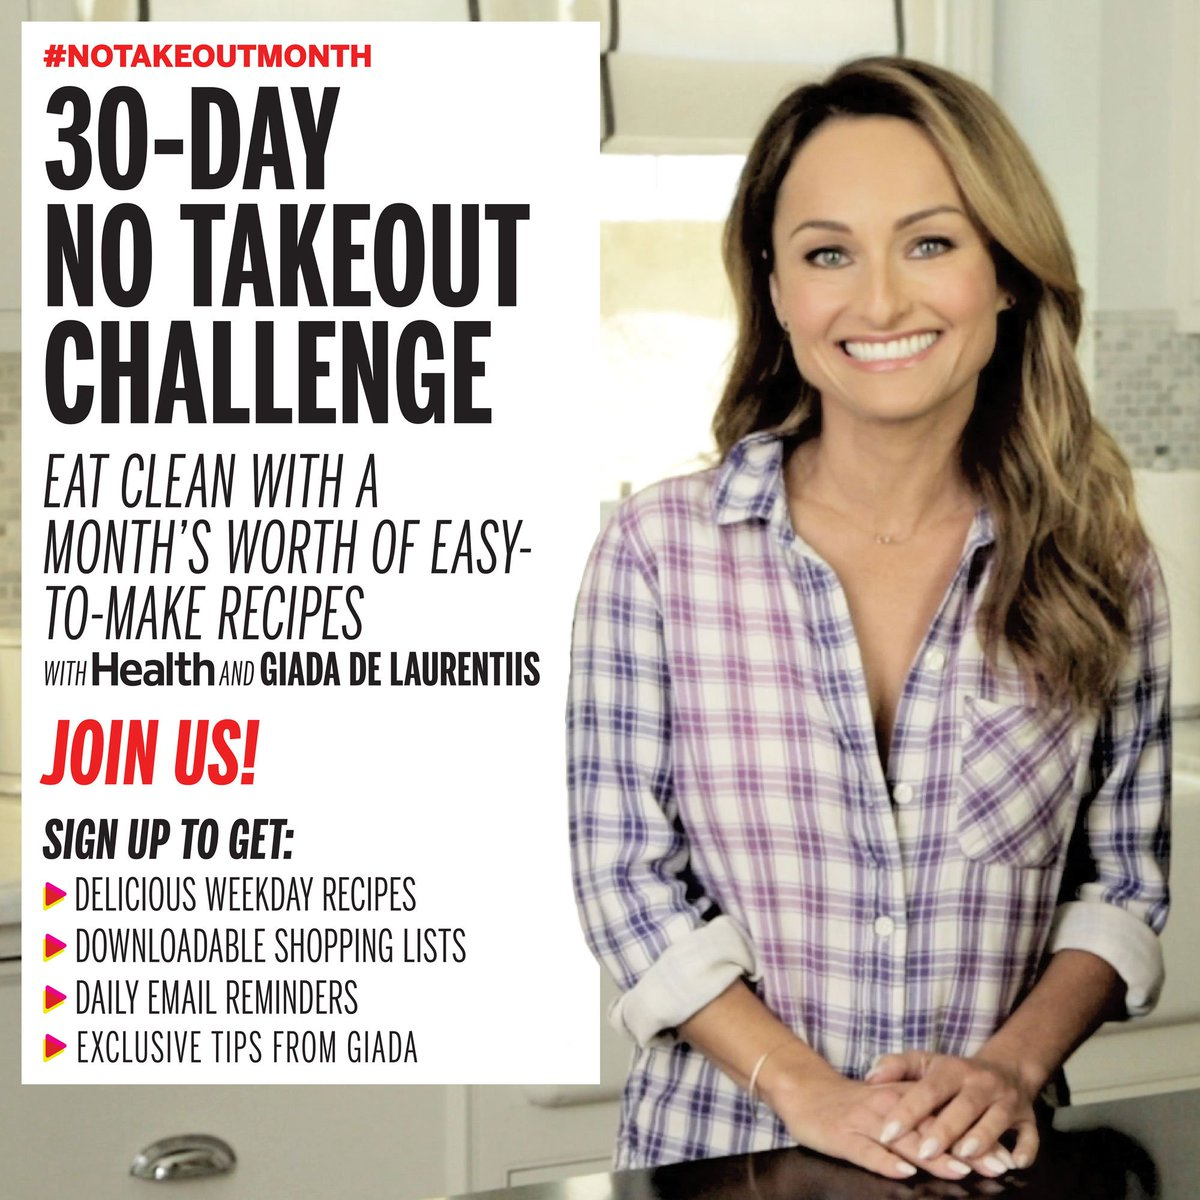 Eating clean is easy! Sign up for our FREE NoTakeoutMonth Challenge with @GDeLaurentiis!